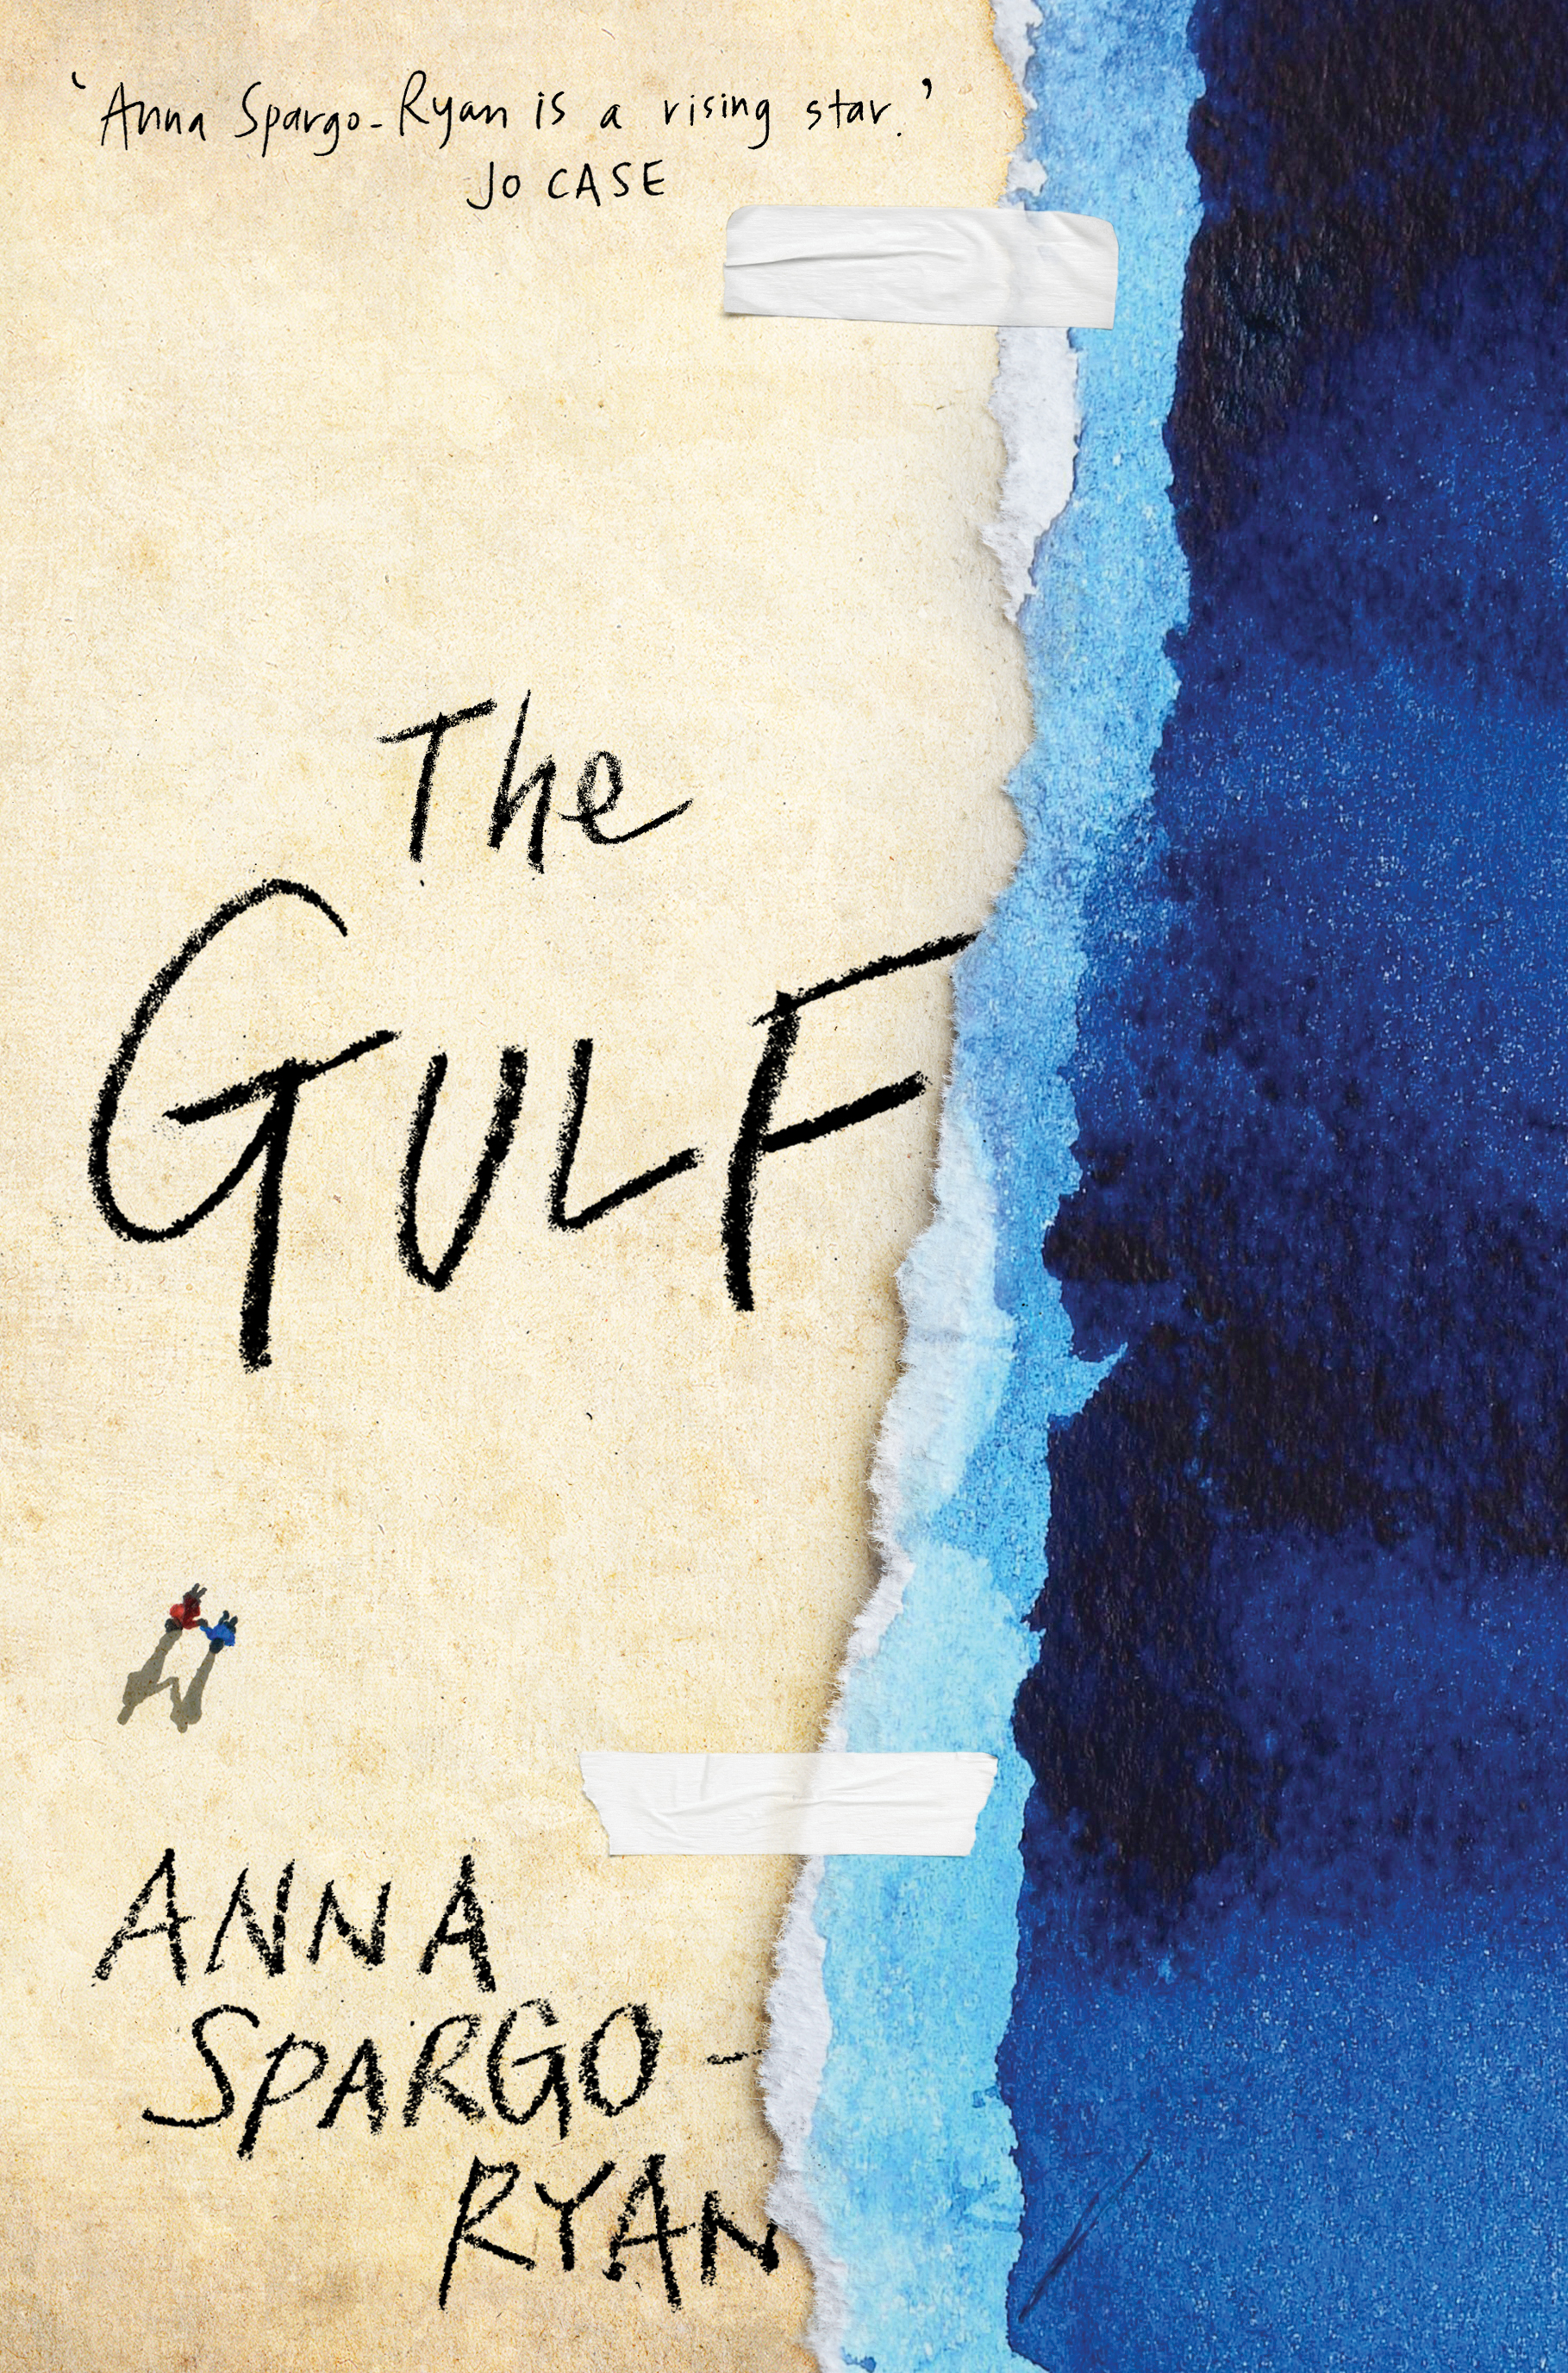 Cover image of the  book, 'The Gulf' by Anna Spargo-Ryan